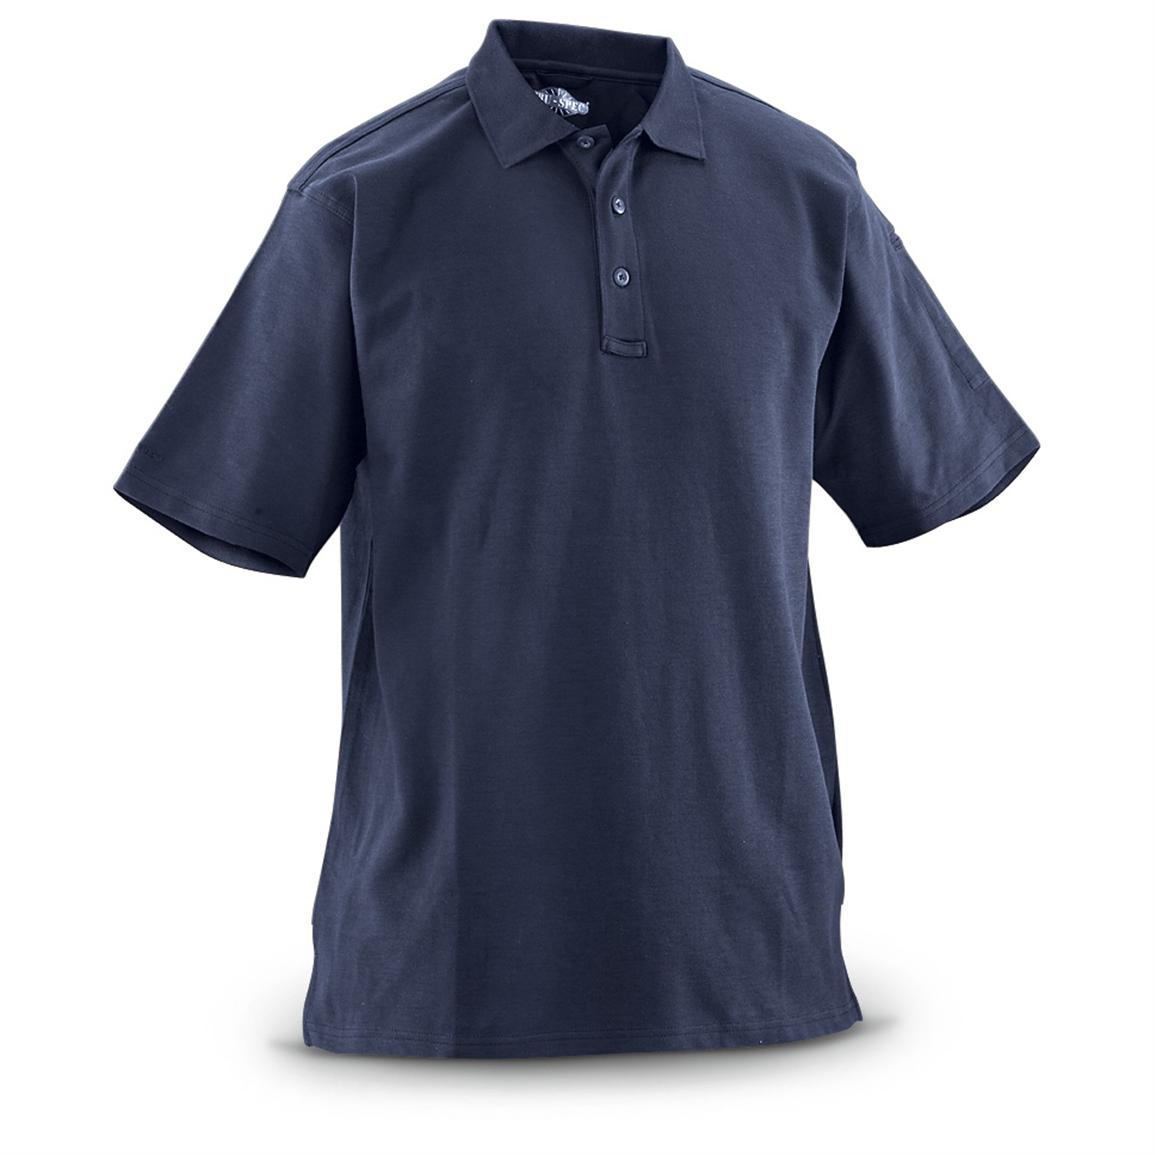 2 EOTAC™ Short-sleeved Pocket Polo Shirts, Navy